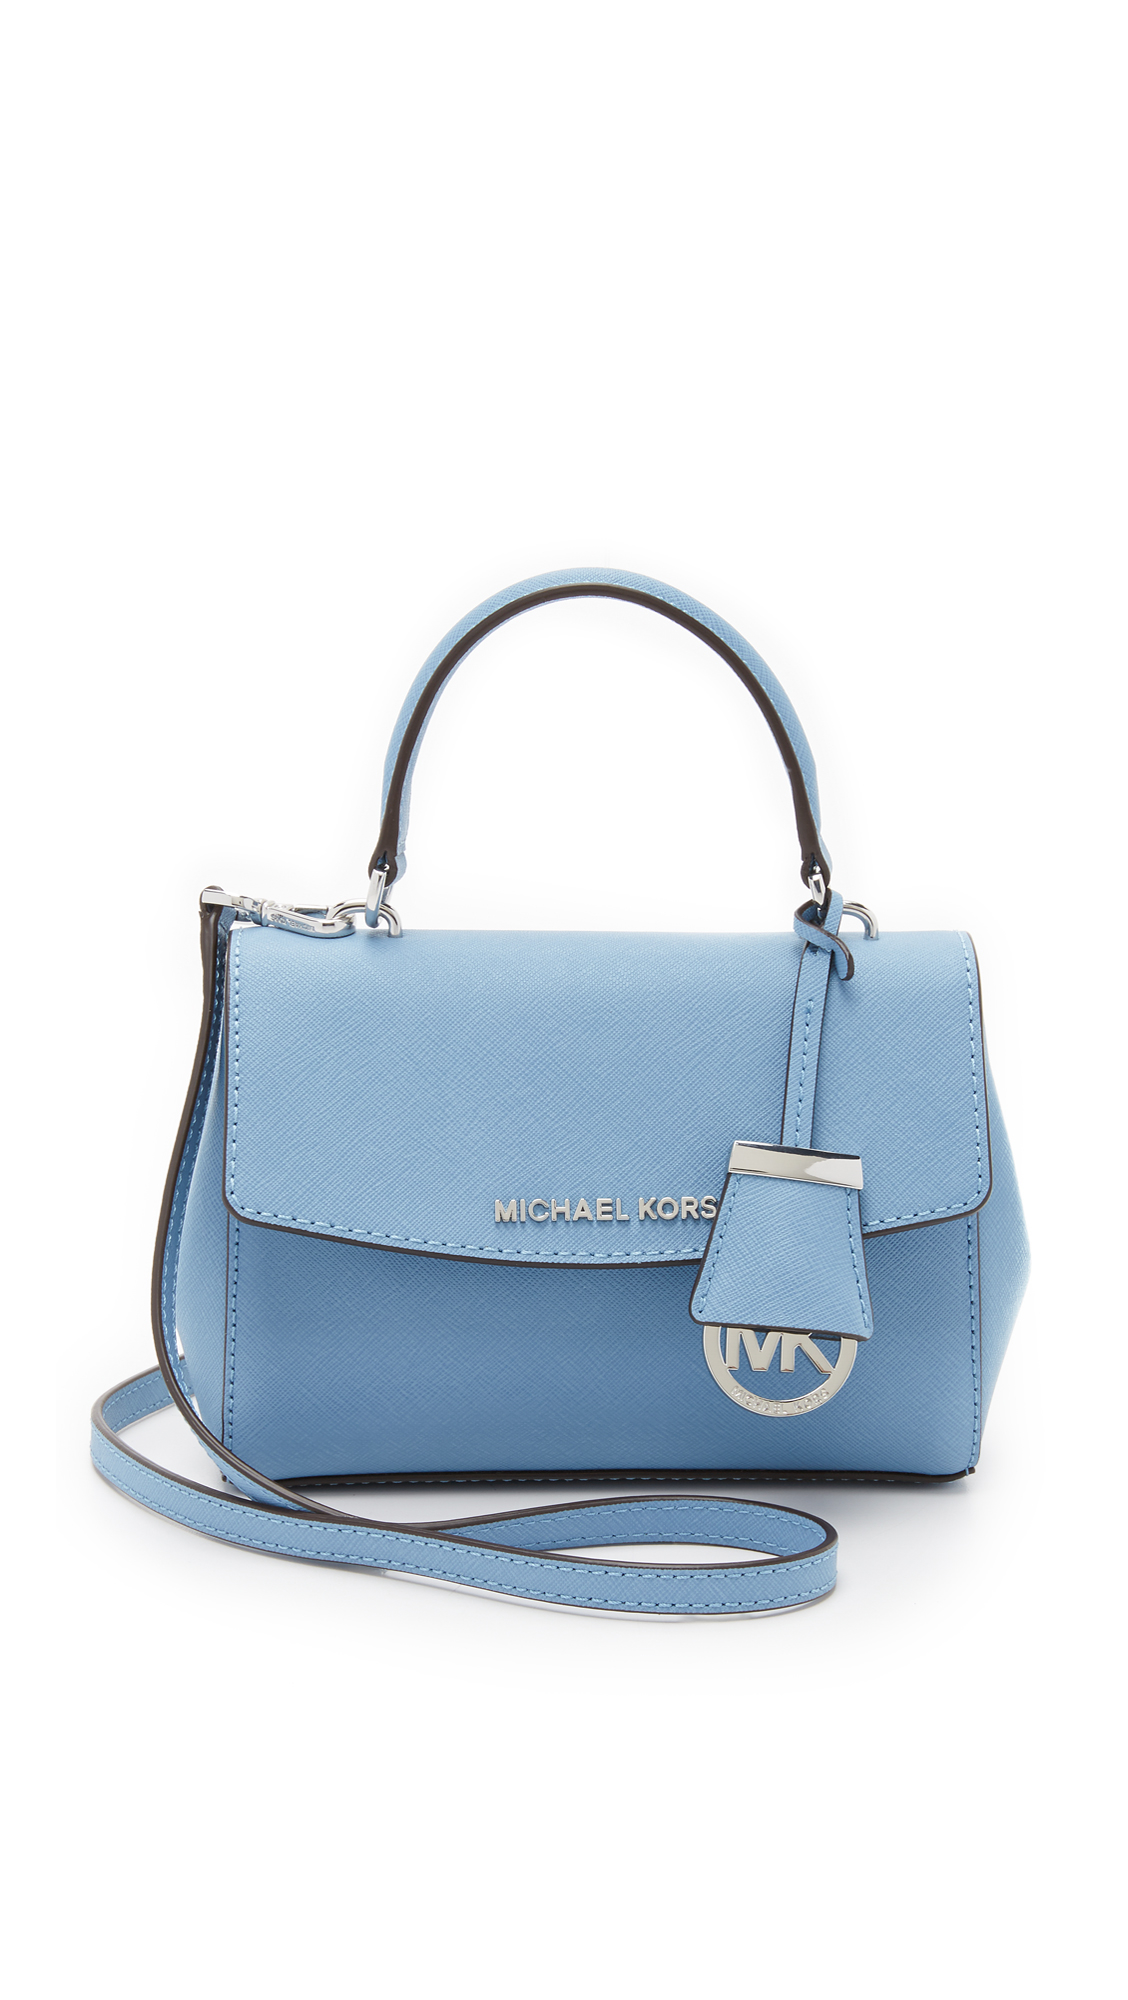 f98355bea6a9 ... new style lyst michael michael kors ava small cross body bag sky in  blue 7fb6b c03a4